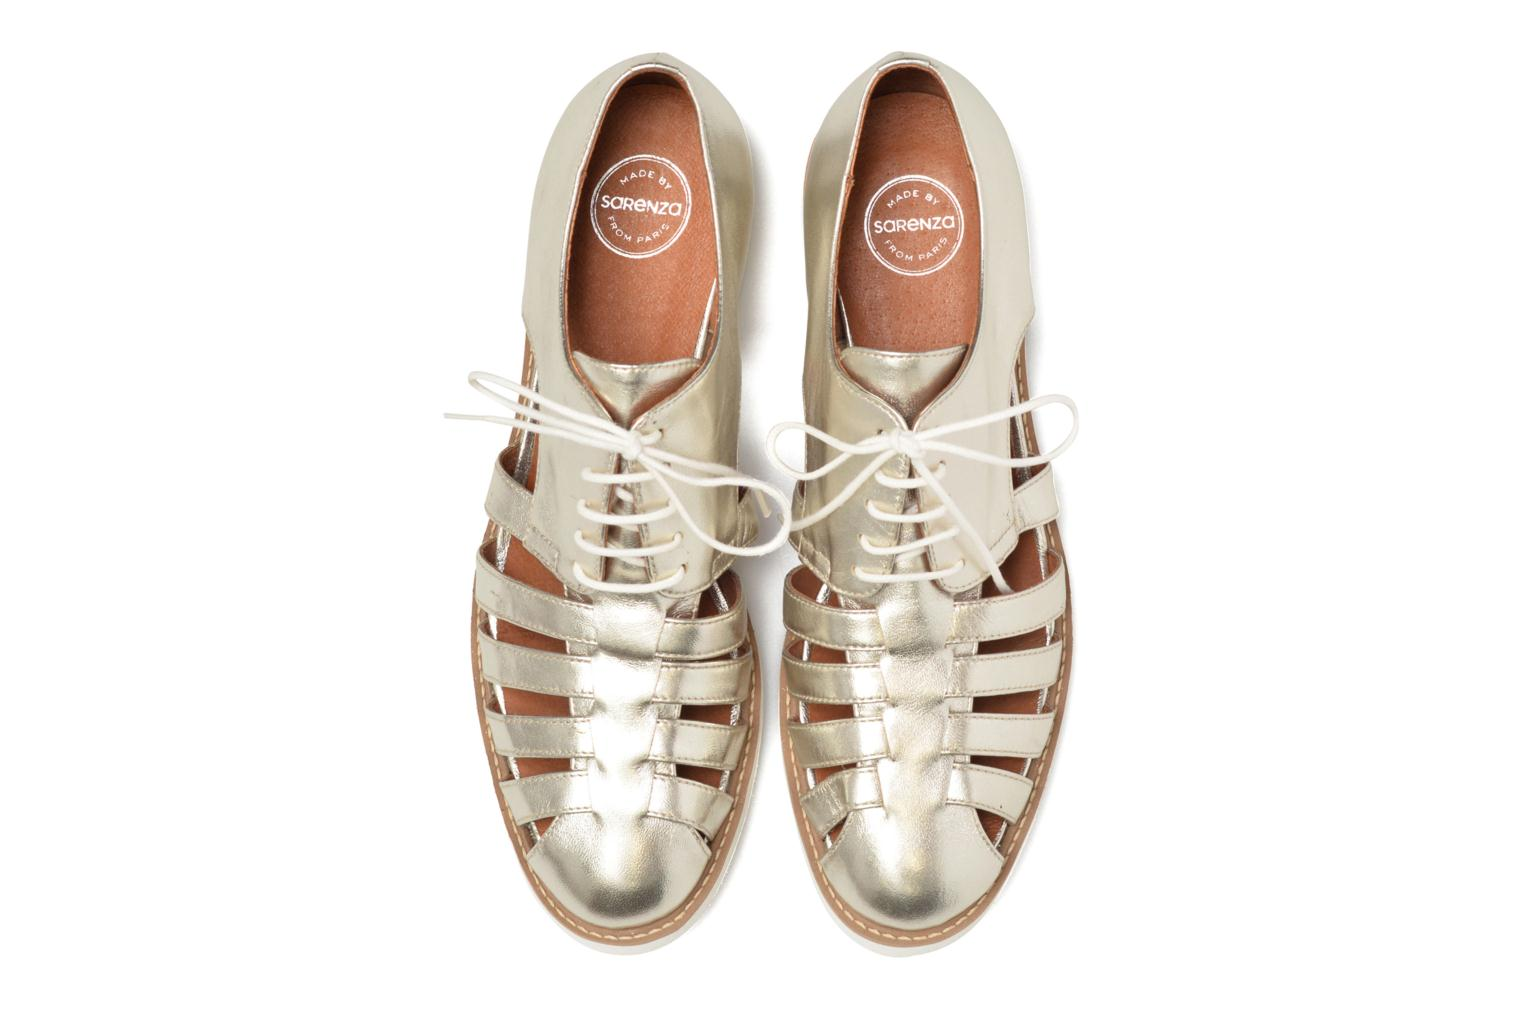 90's Girls Gang Chaussures à Lacets #6 galami argent treppointe cuir naturel